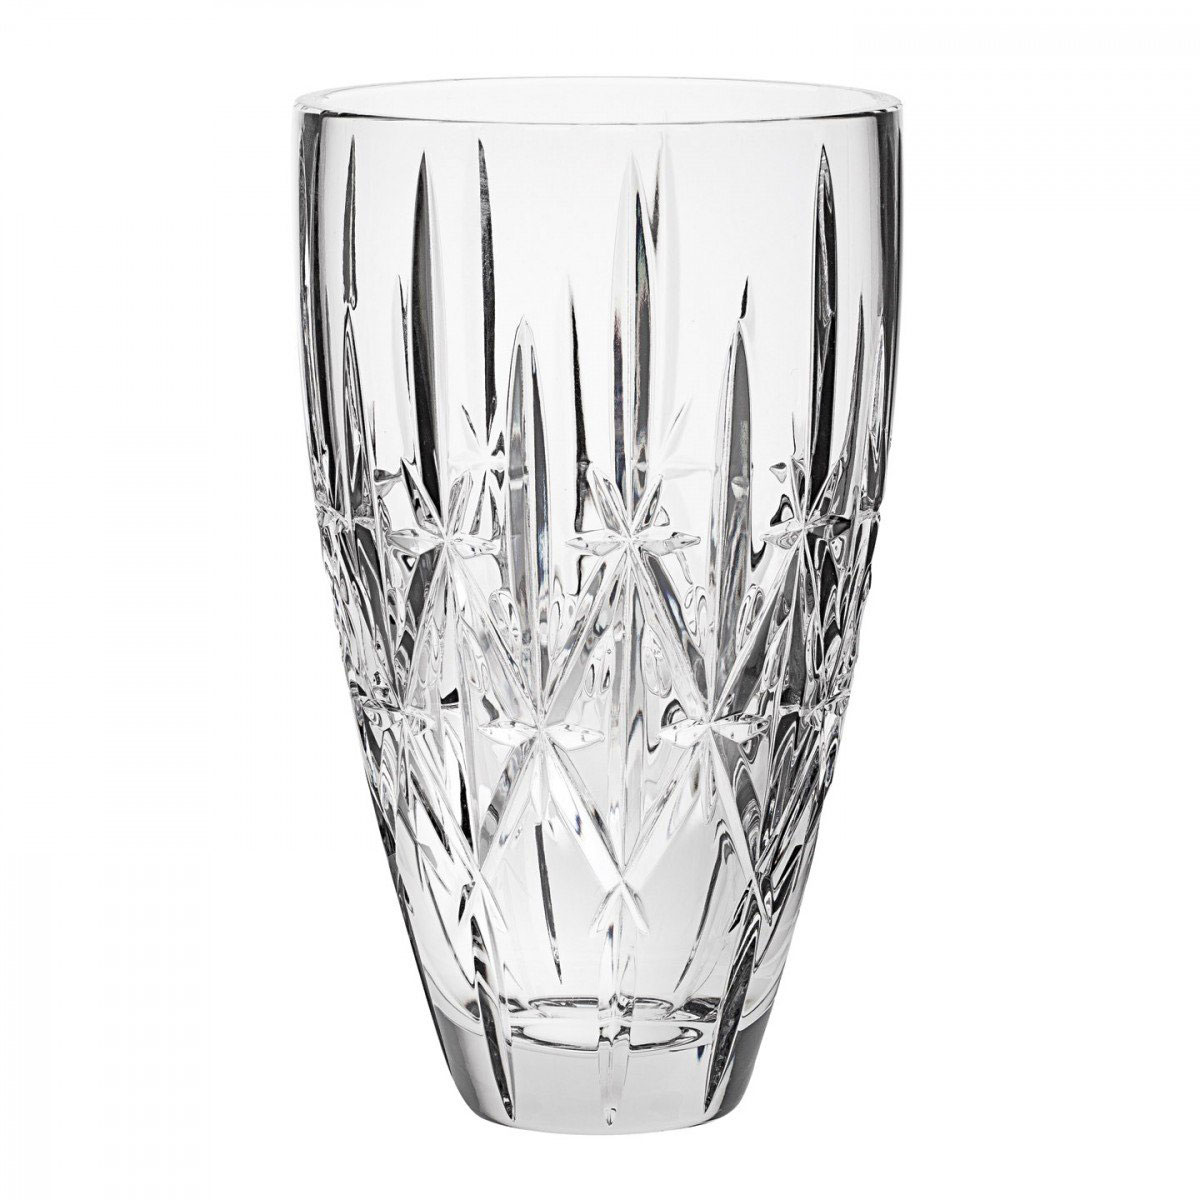 "Marquis by Waterford Crystal, Sparkle 9"" Crystal Vase"